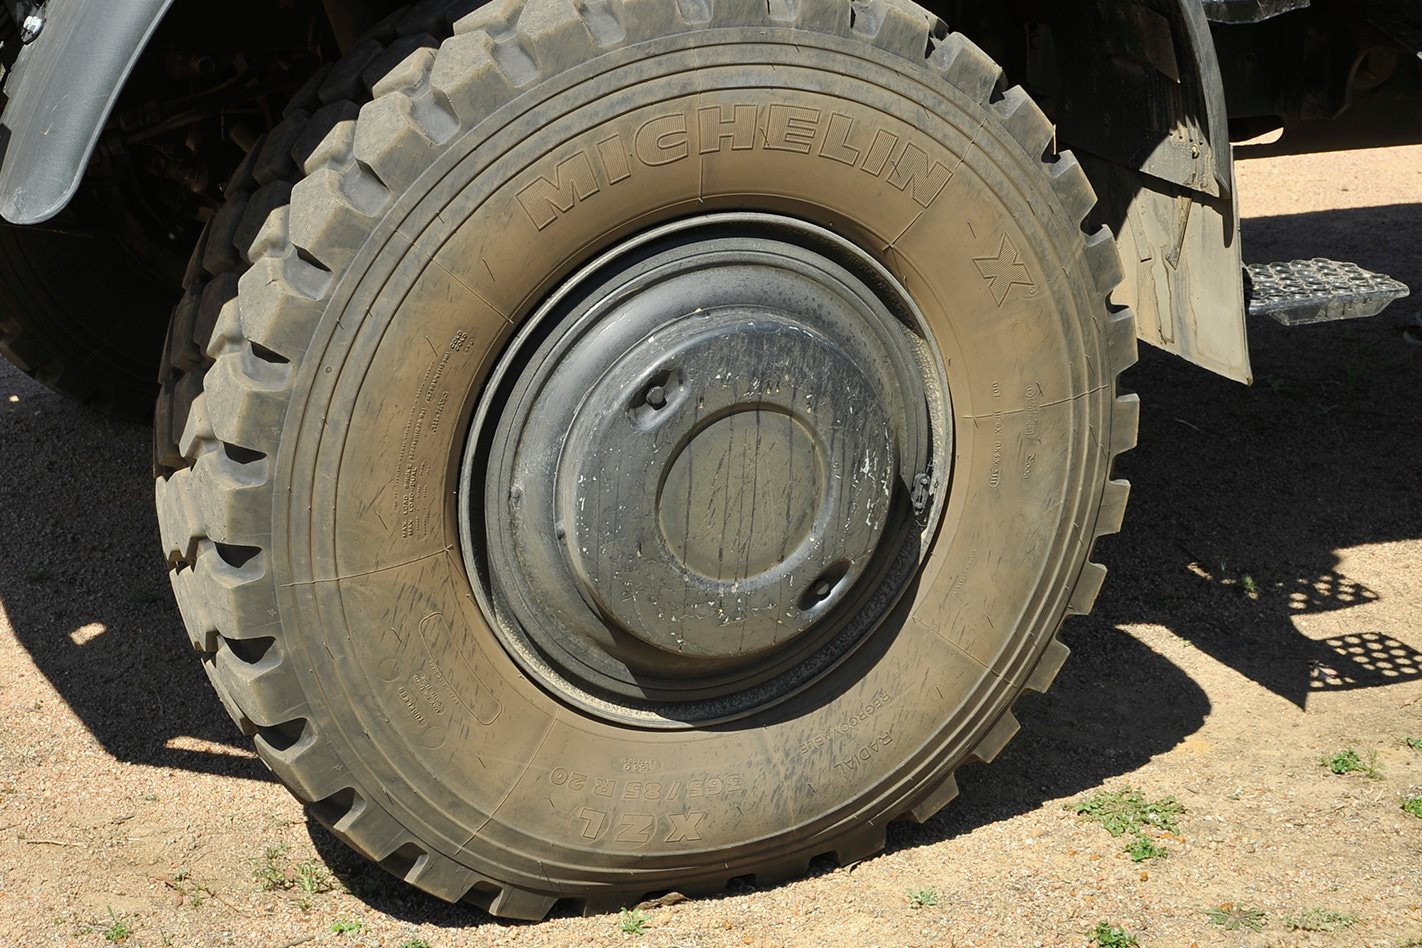 Mercedes Benz Unimog U5000 wheel